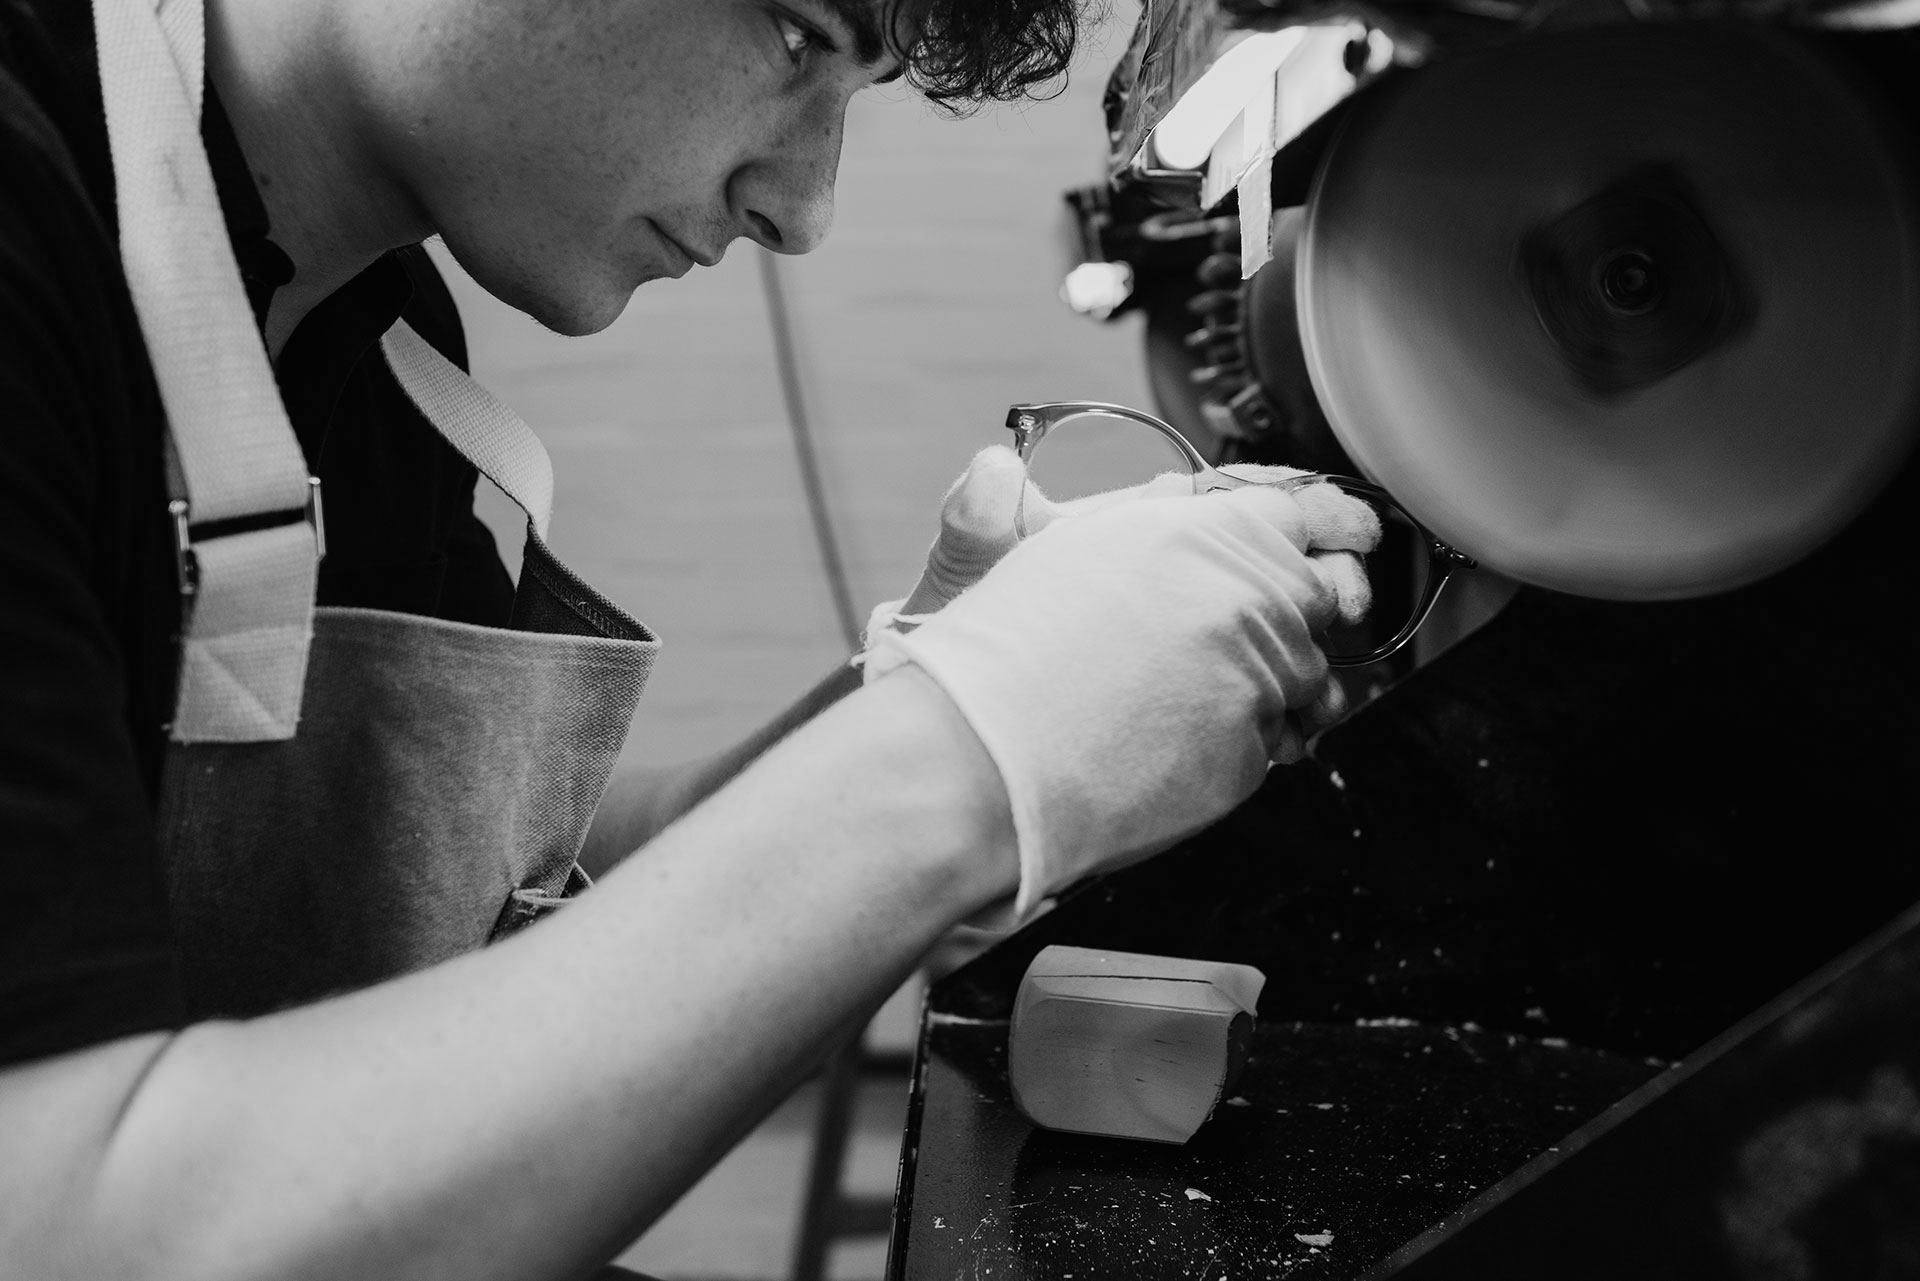 Tom Davies frames being handpolished by an expert craftsman in the brand's London factory